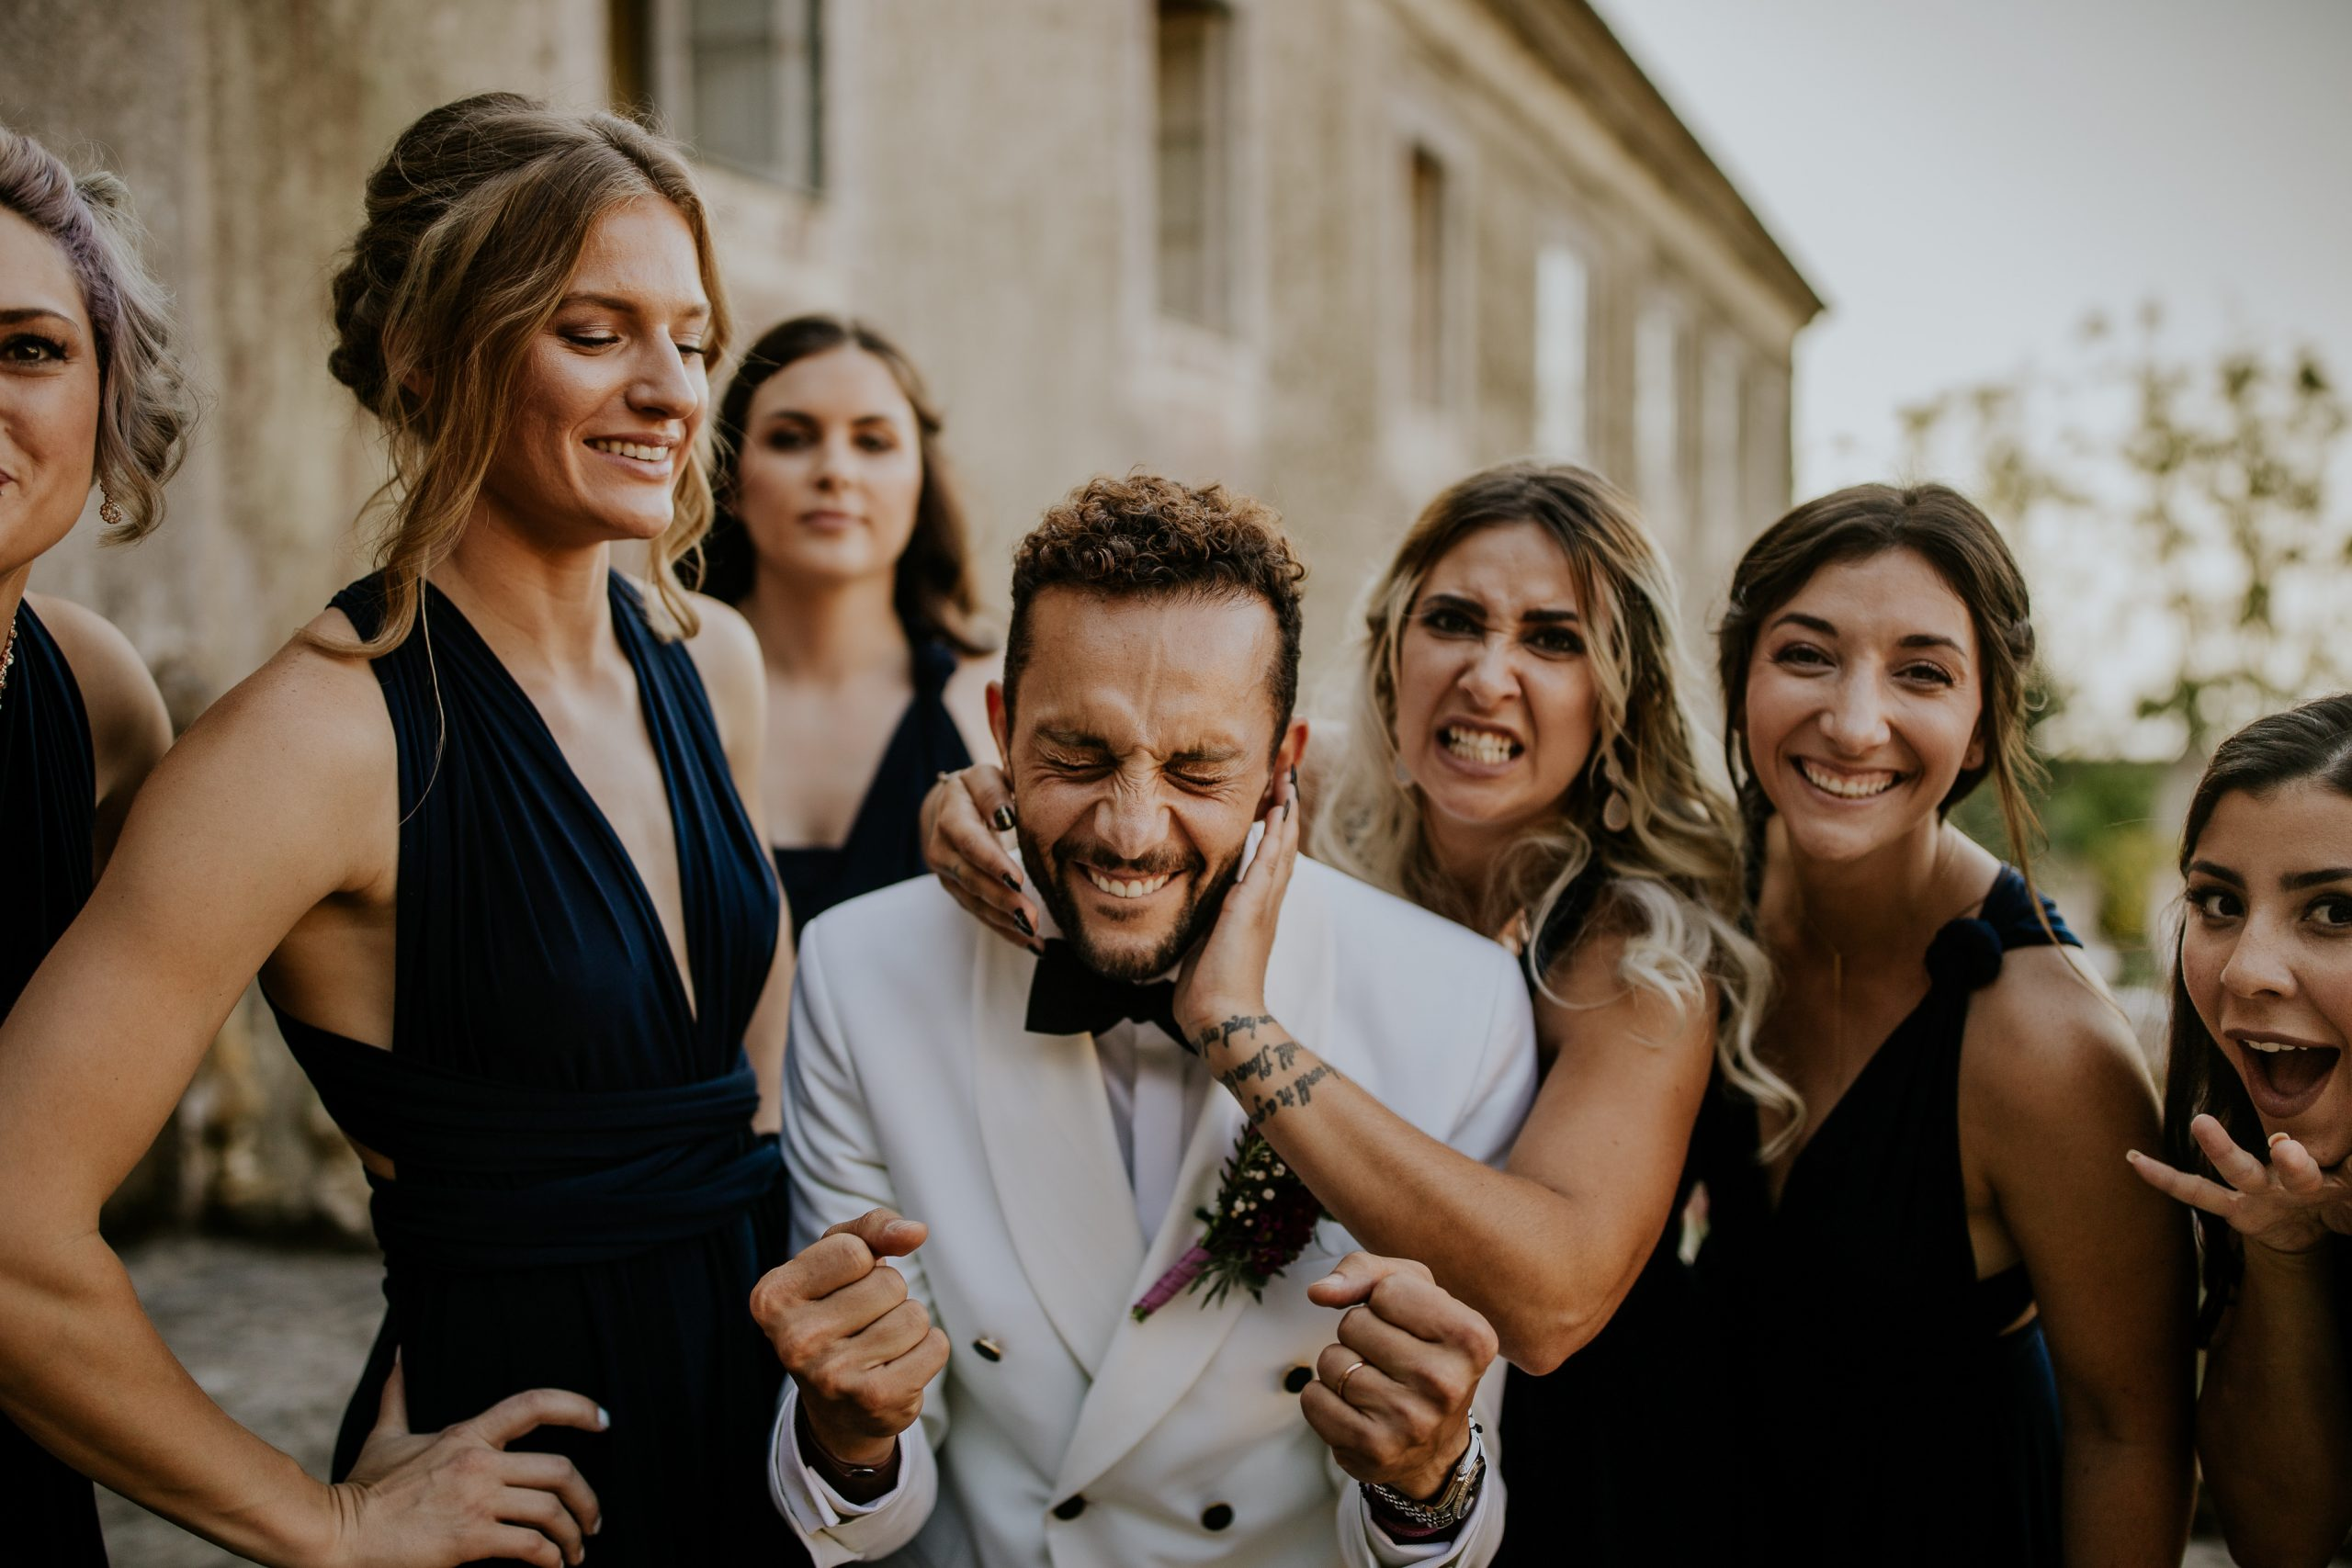 happy groom rounded by girls